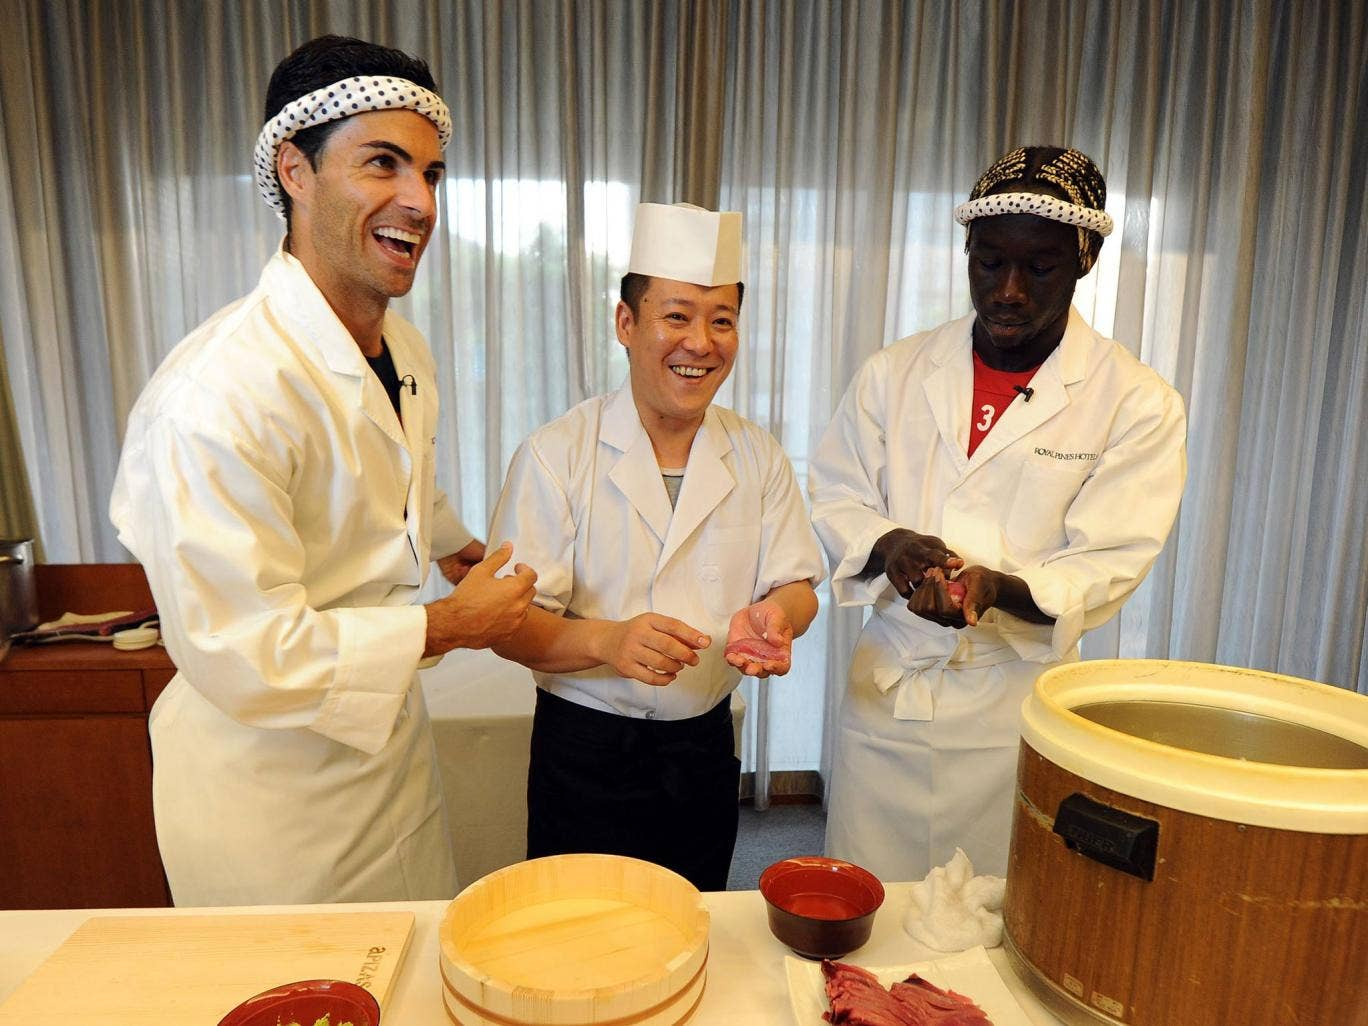 Mikel Arteta (L) and Bacary Sagna (R) of Arsenal FC are given a lesson in making Sushi from a top Sushi Chef in the Urawa Royal Pines Hotel in Japan